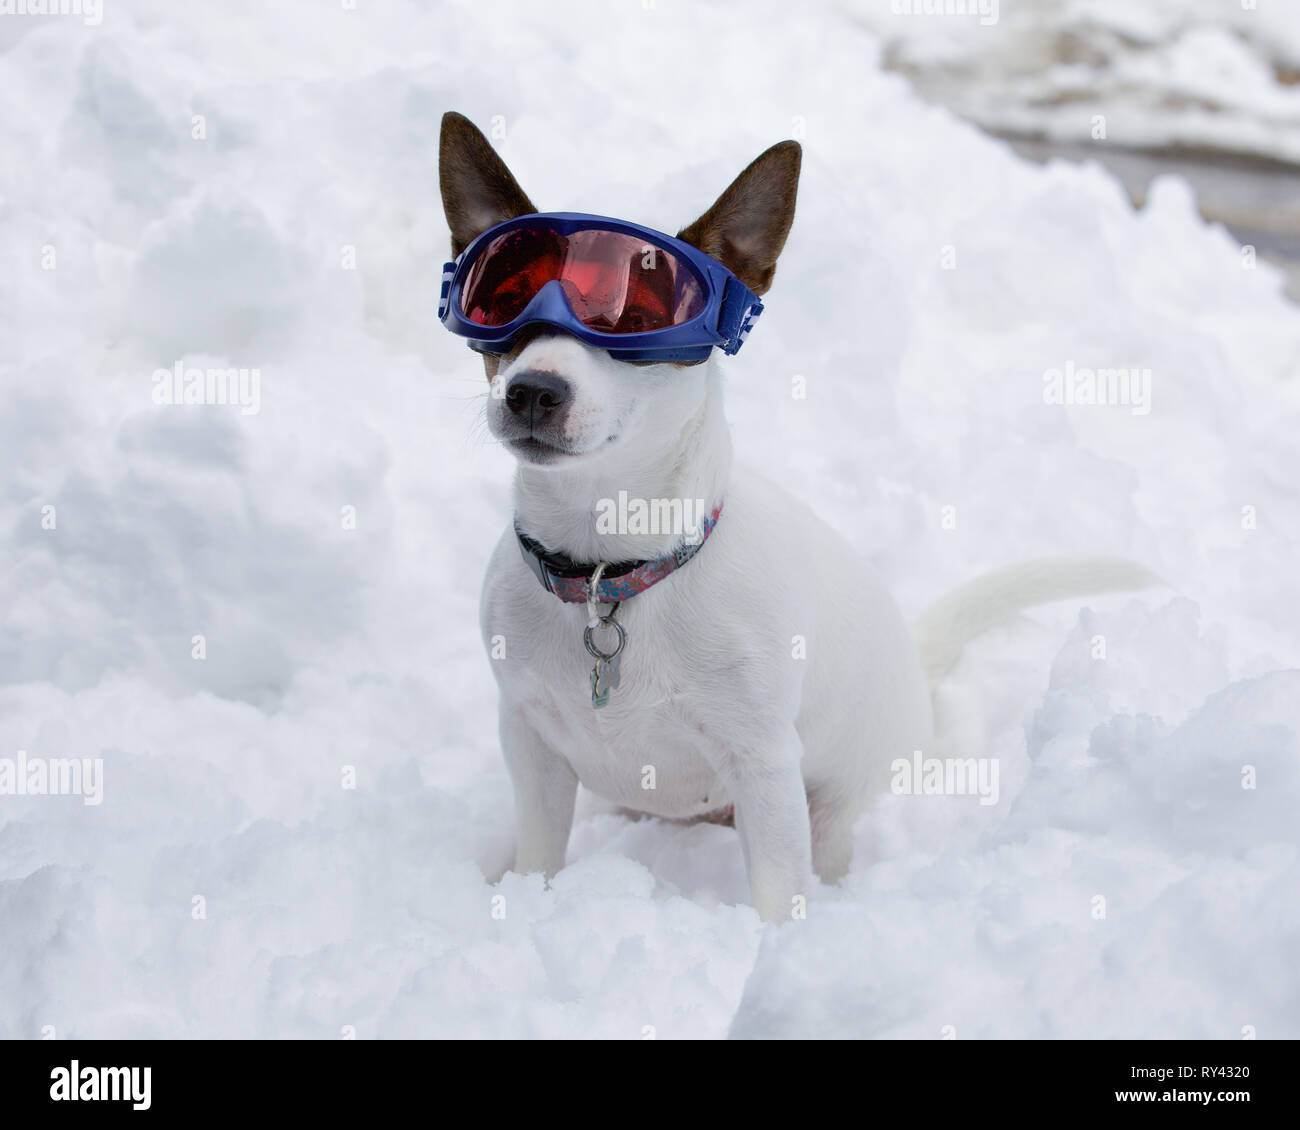 Small mostly white Jack Russell Terrier dog sitting in snow while wearing blue ski goggles on a cold winter day - Stock Image